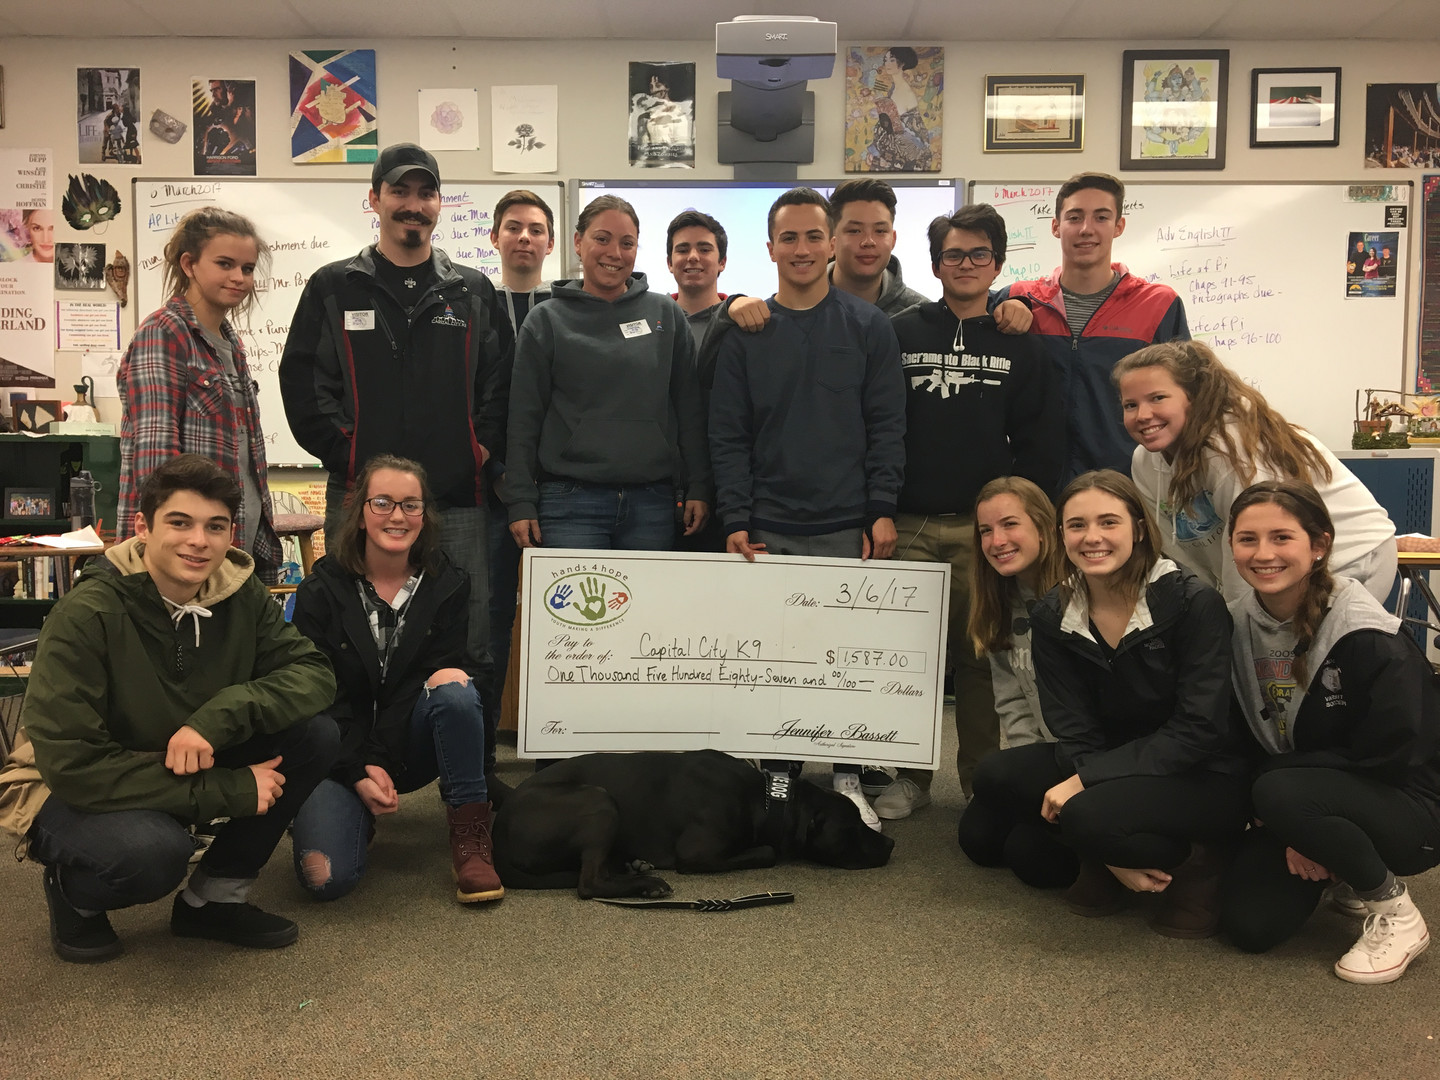 Ponderosa High School | Providing Check to Capital City K9